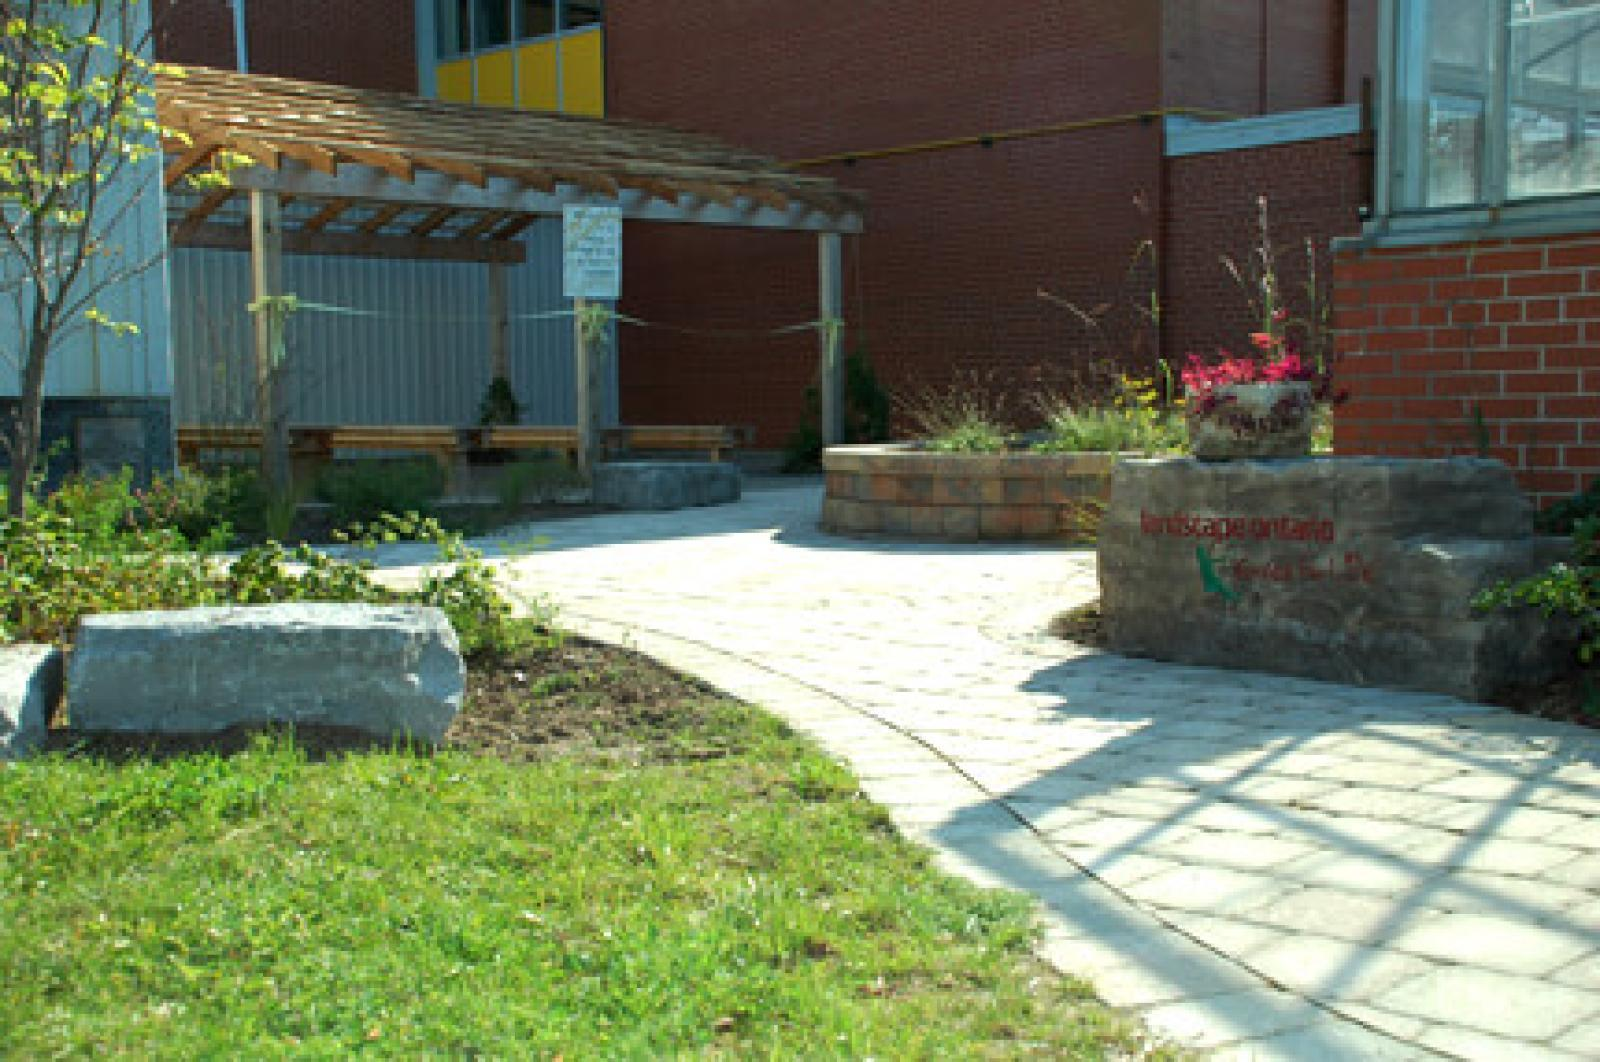 Waterloo's latest greening project creates outdoor classroom